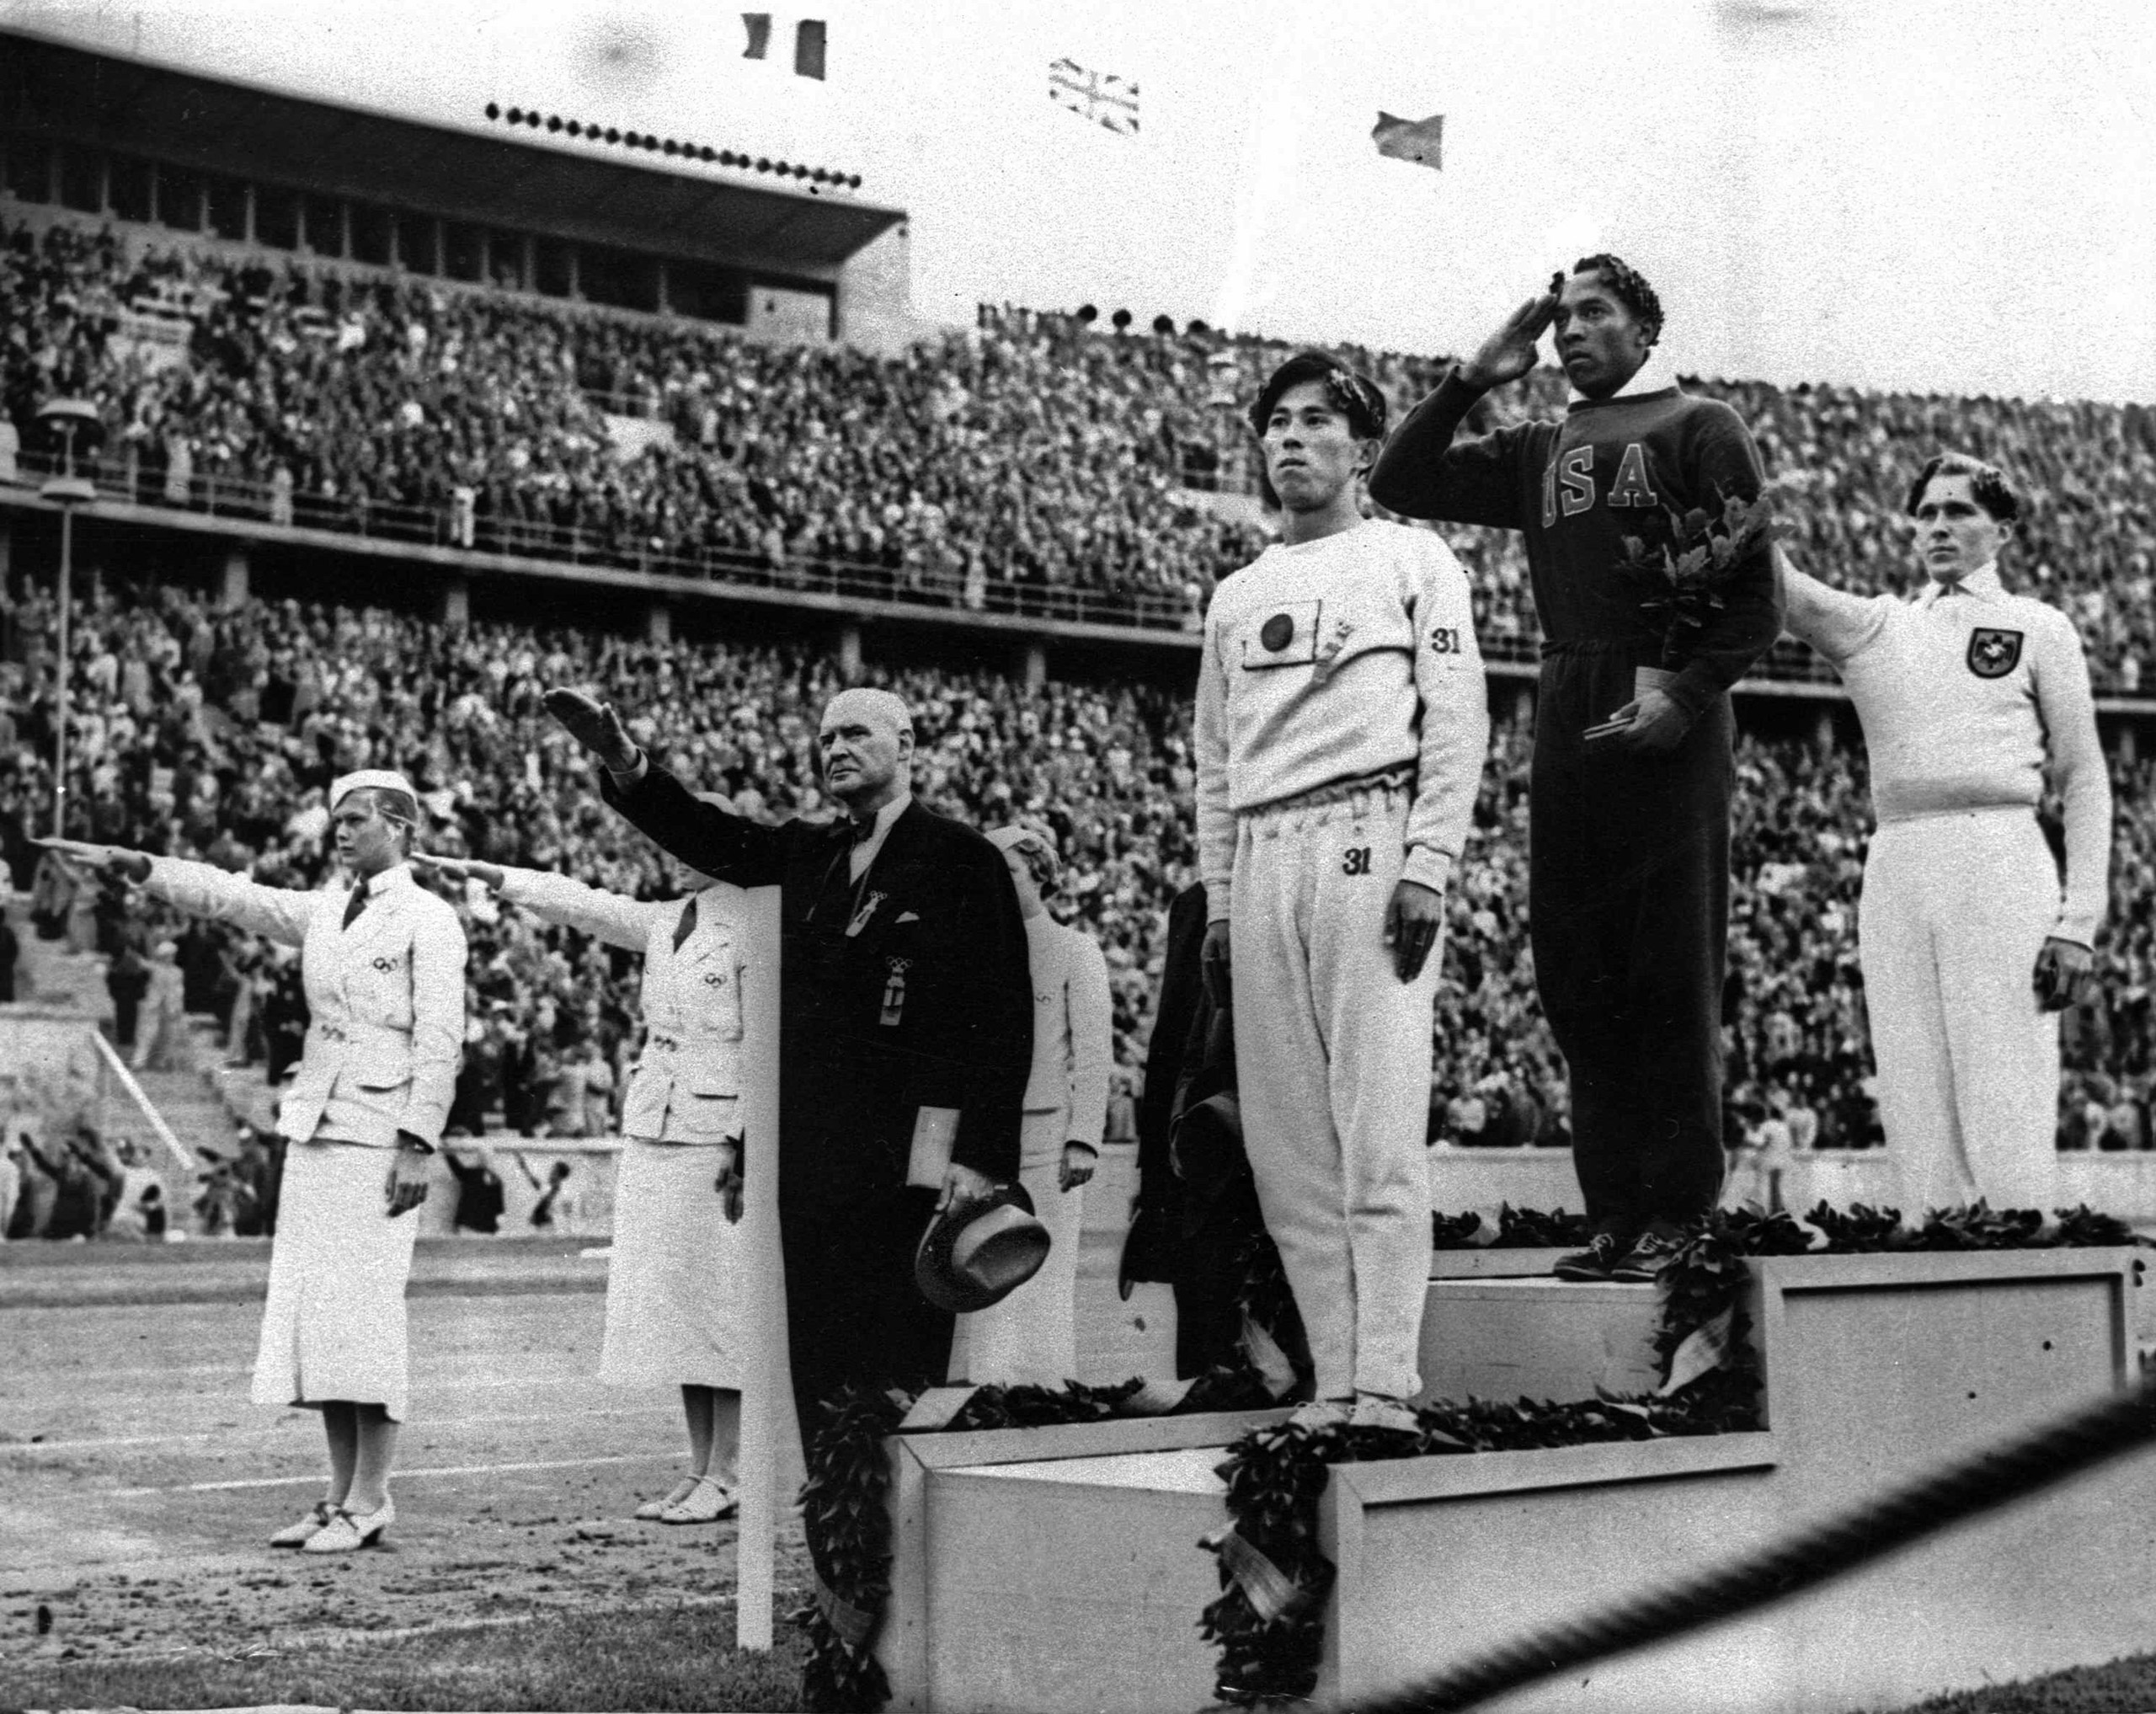 Olympic broad jump medalists salute during the medals ceremony at the Summer Olympics in Berlin. From left on podium are: bronze medalist Jajima of Japan, gold medalist Jesse Owens of the United States and silver medalist Lutz Long of Germany. Aug. 11, 1936.